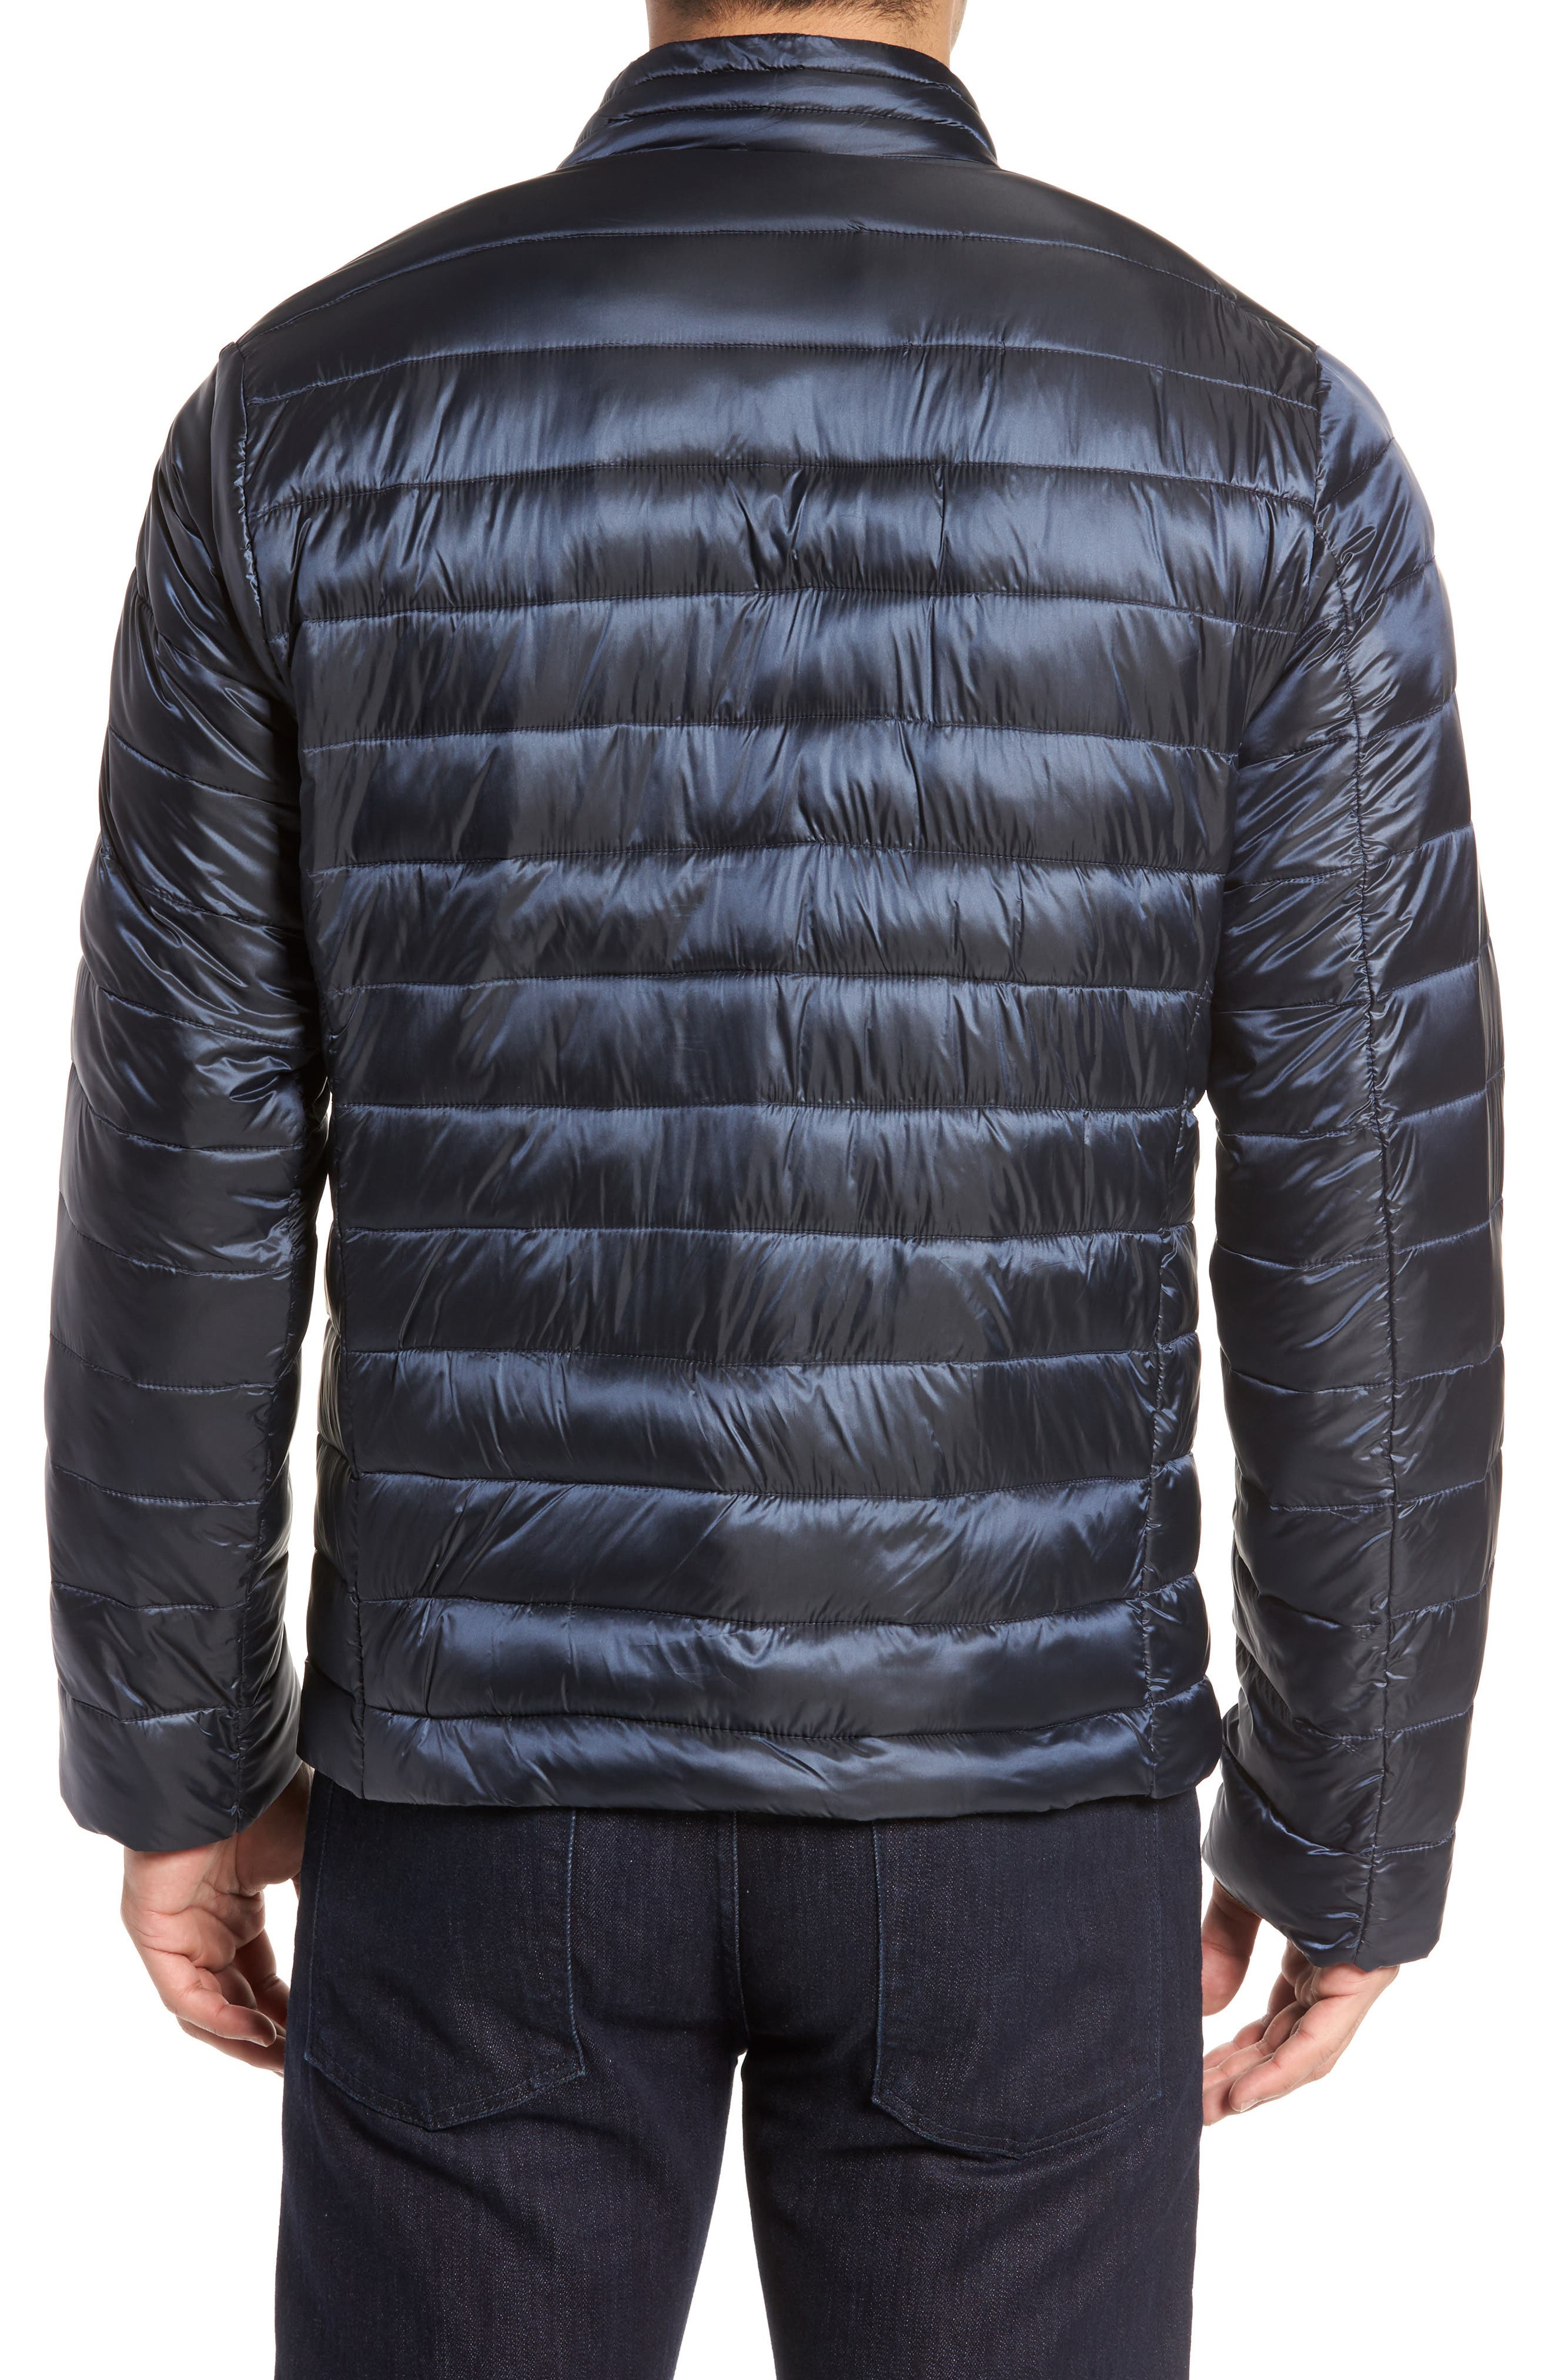 Channel Quilted Jacket,                             Alternate thumbnail 2, color,                             Navy